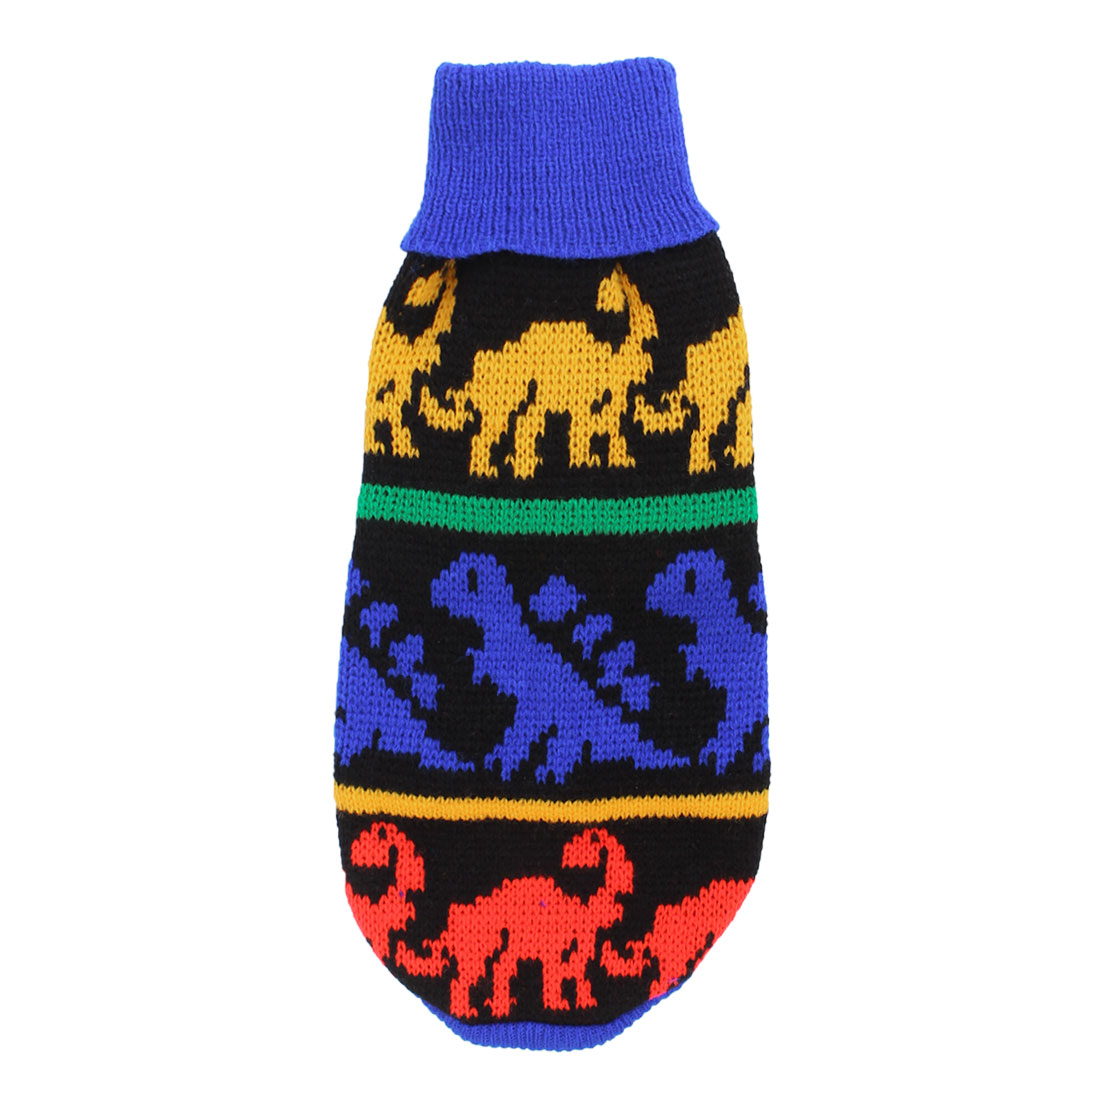 Unique Bargains Pet Dog Puppy Cat Dinosaur Printed Ribbed Cuff Knitwear Sweater Colorful XXS